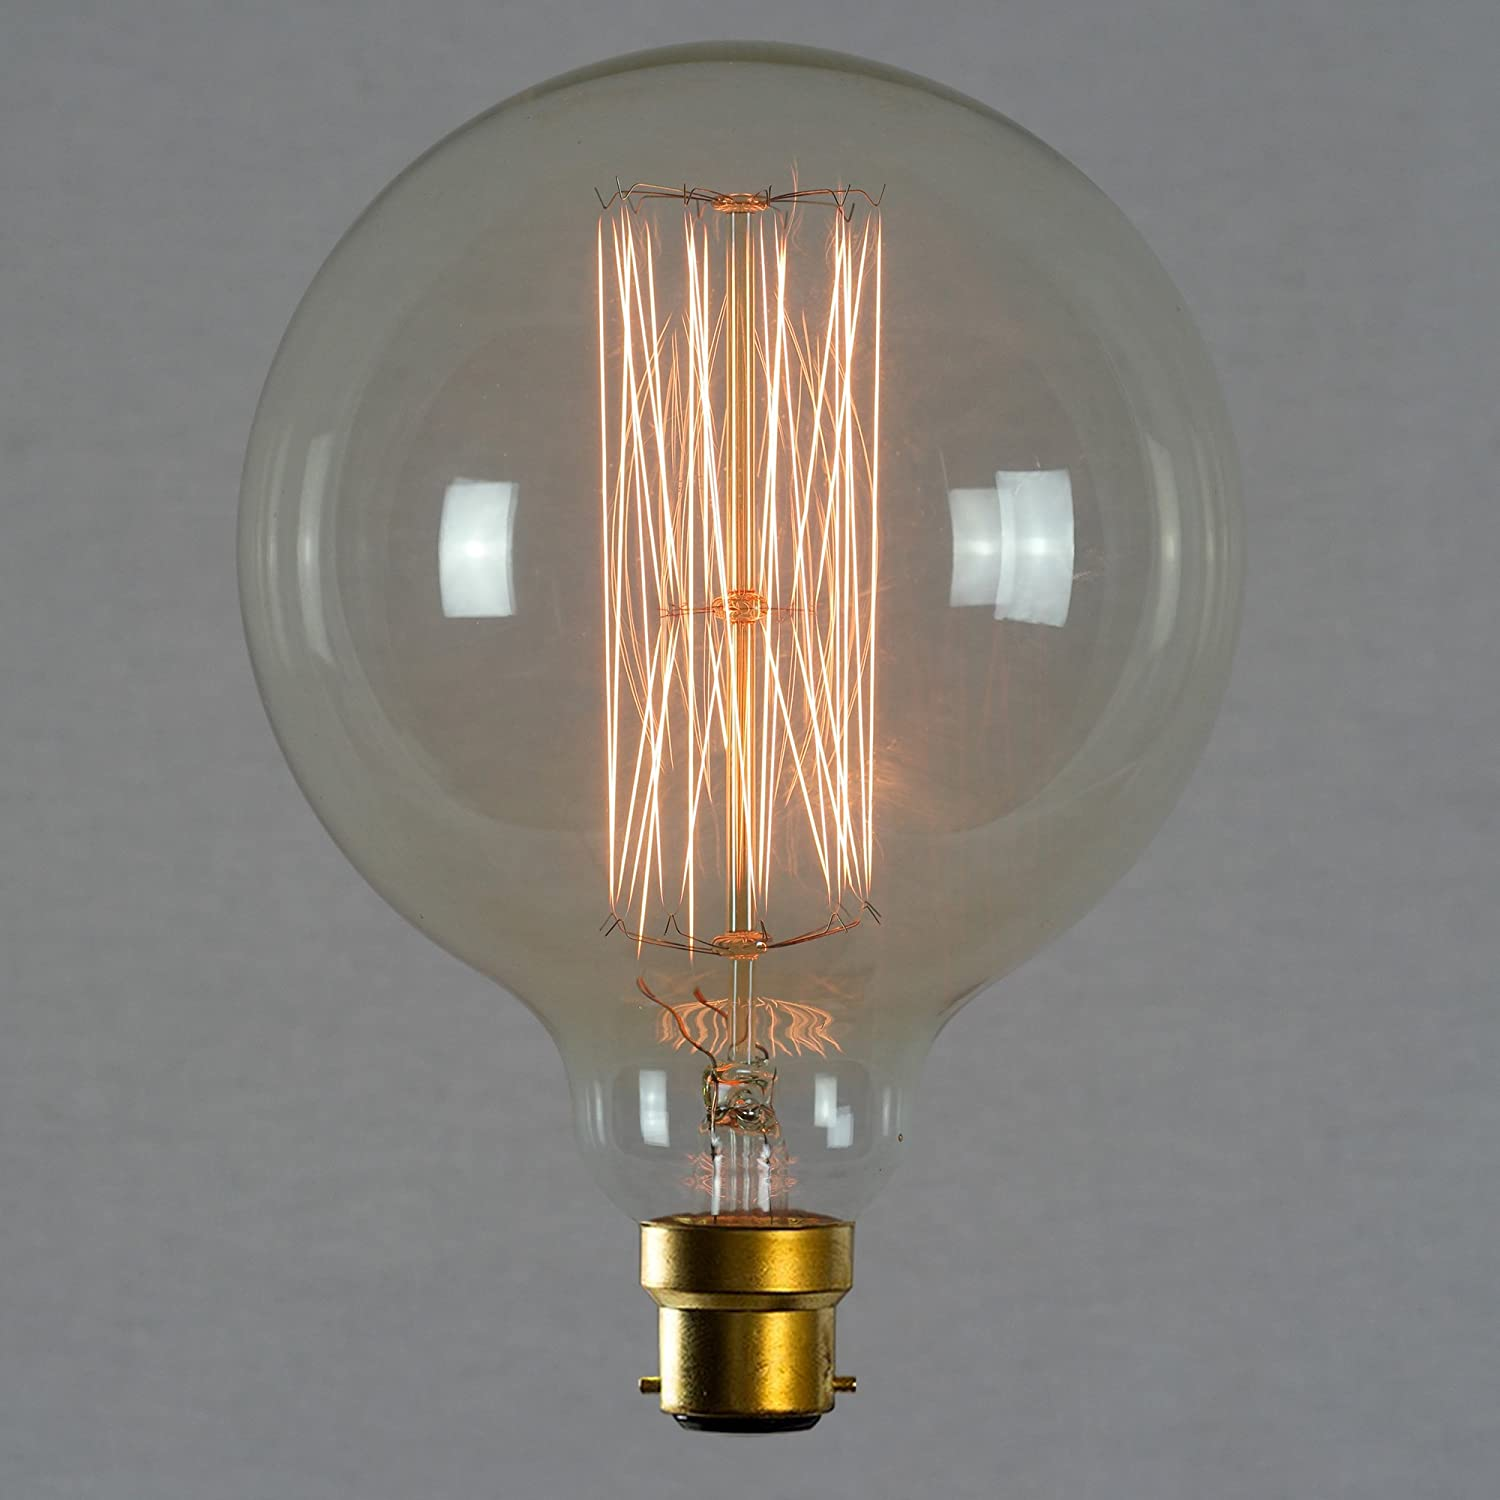 Vintage Edison Globe Light Bulb Boyonet 60w - Giant Squirrel Cage Globe Dimmable 125mm B22 BC - The Retro Boutique ® TRB